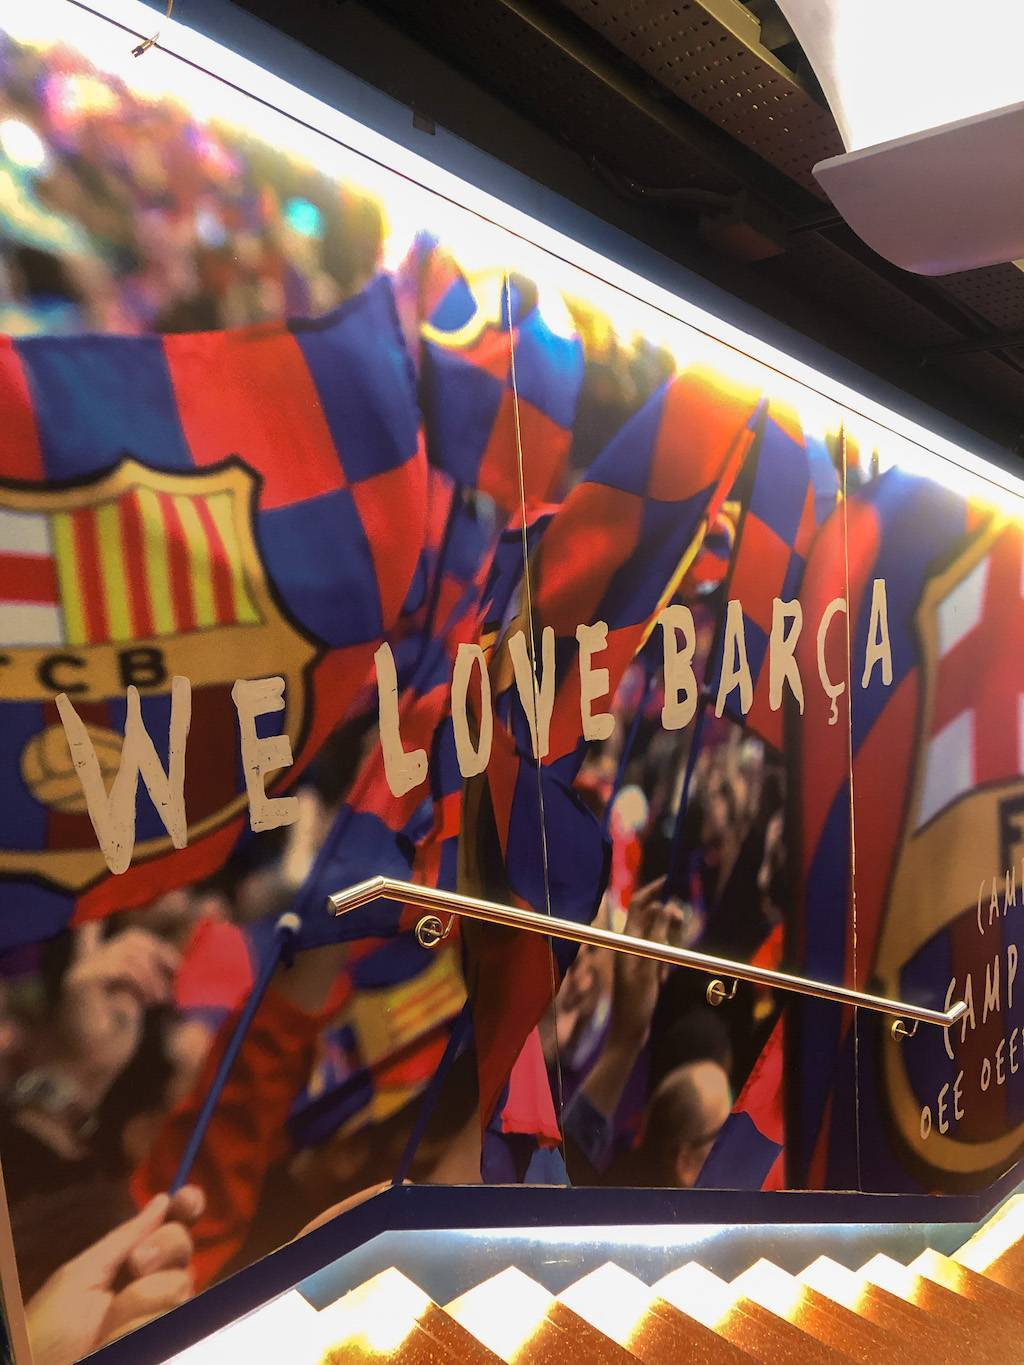 Camp Nou Experience post COVID-19 pandemic [VLOG]